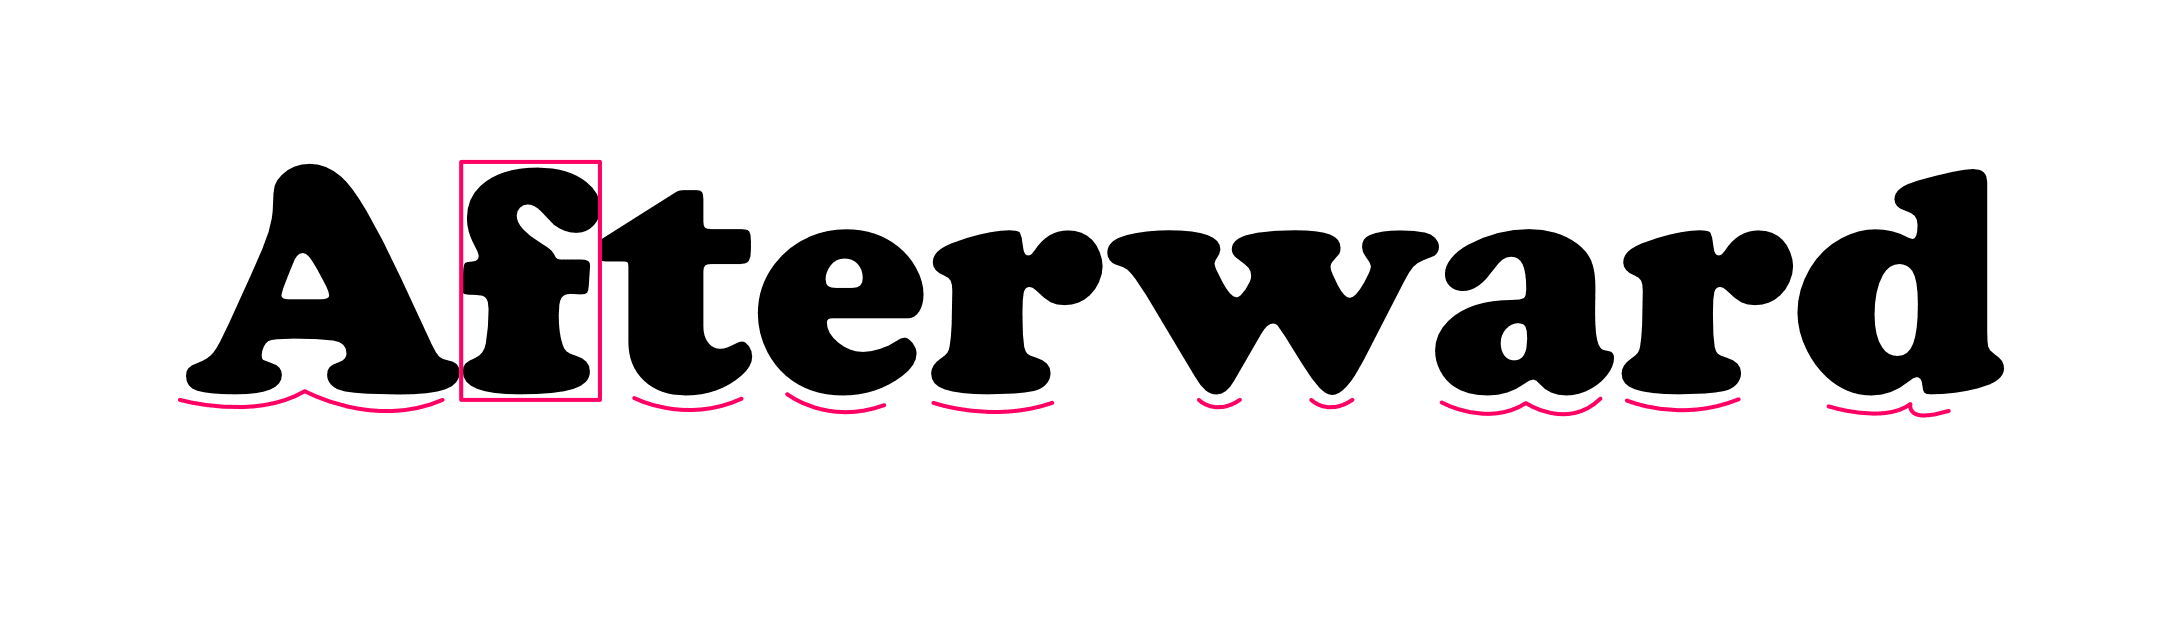 The word 'Afterward' but with the curves and the 'f' highlighted